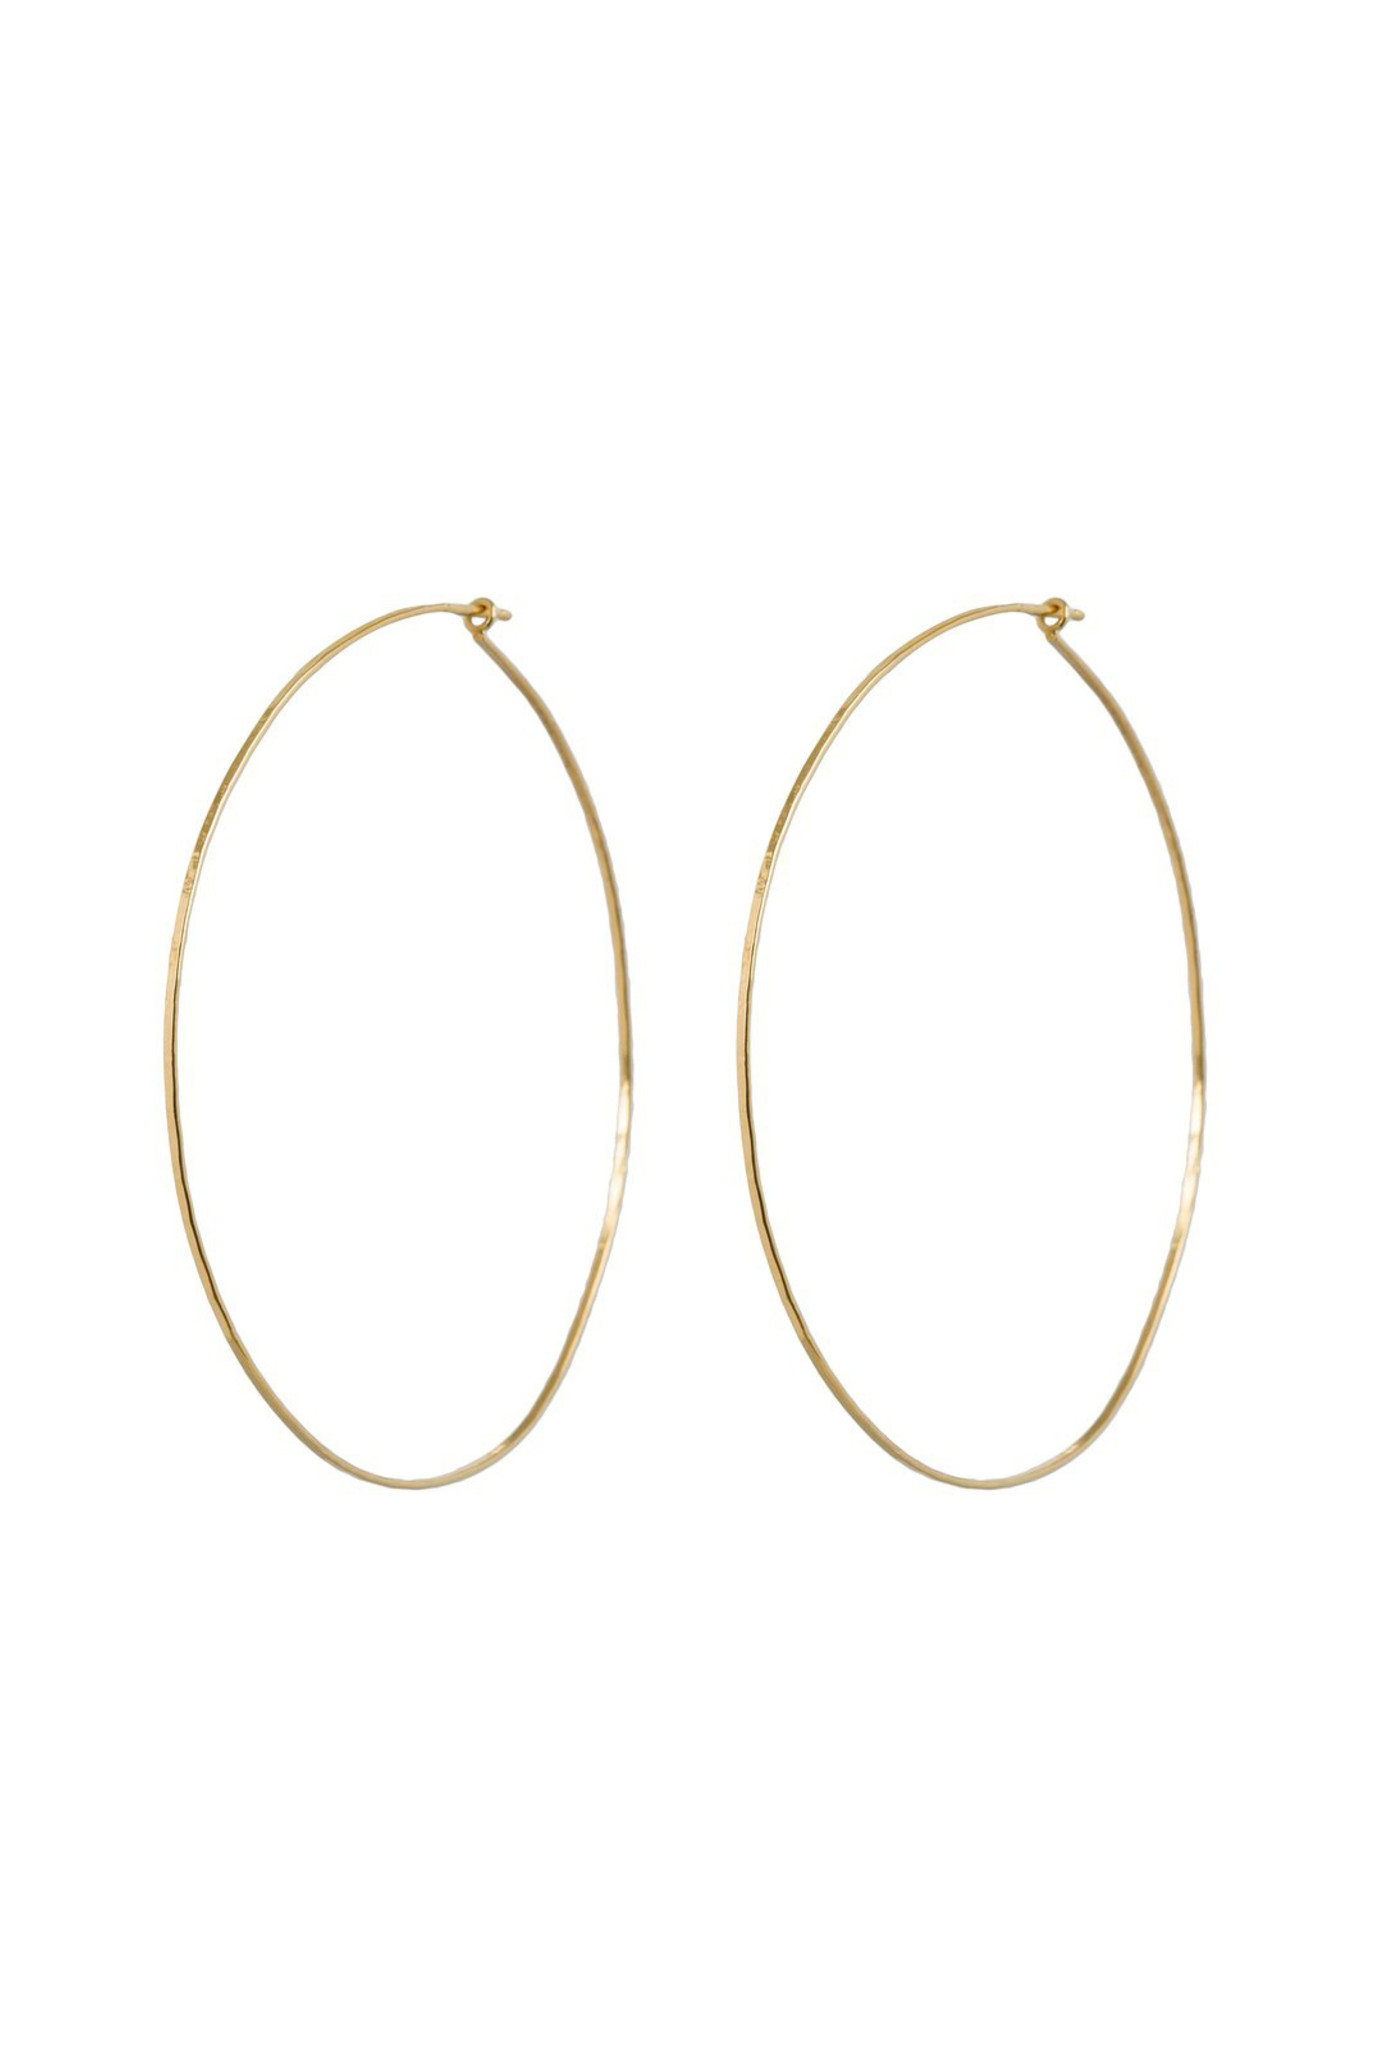 Statement hoops hammered gold plated